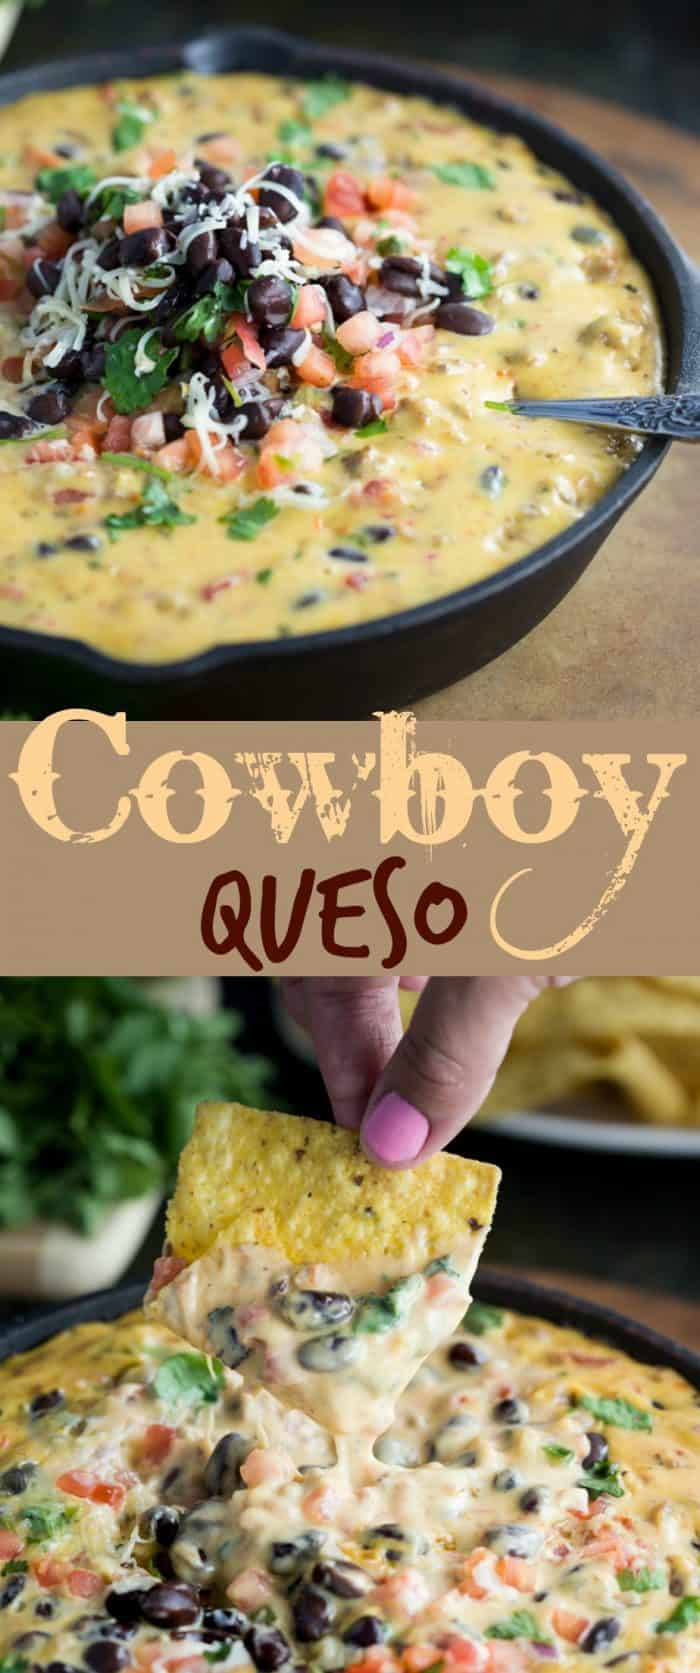 A warm and savory queso dip with your favorite ale, ground beef, tomatoes, black beans, and fresh cilantro. | The Cozy Cook | #dip #appetizer #football #mexican #cheese #gameday #queso #blackbeans #beef #recipe #fingerfood #easyrecipes #partyfood #snacks